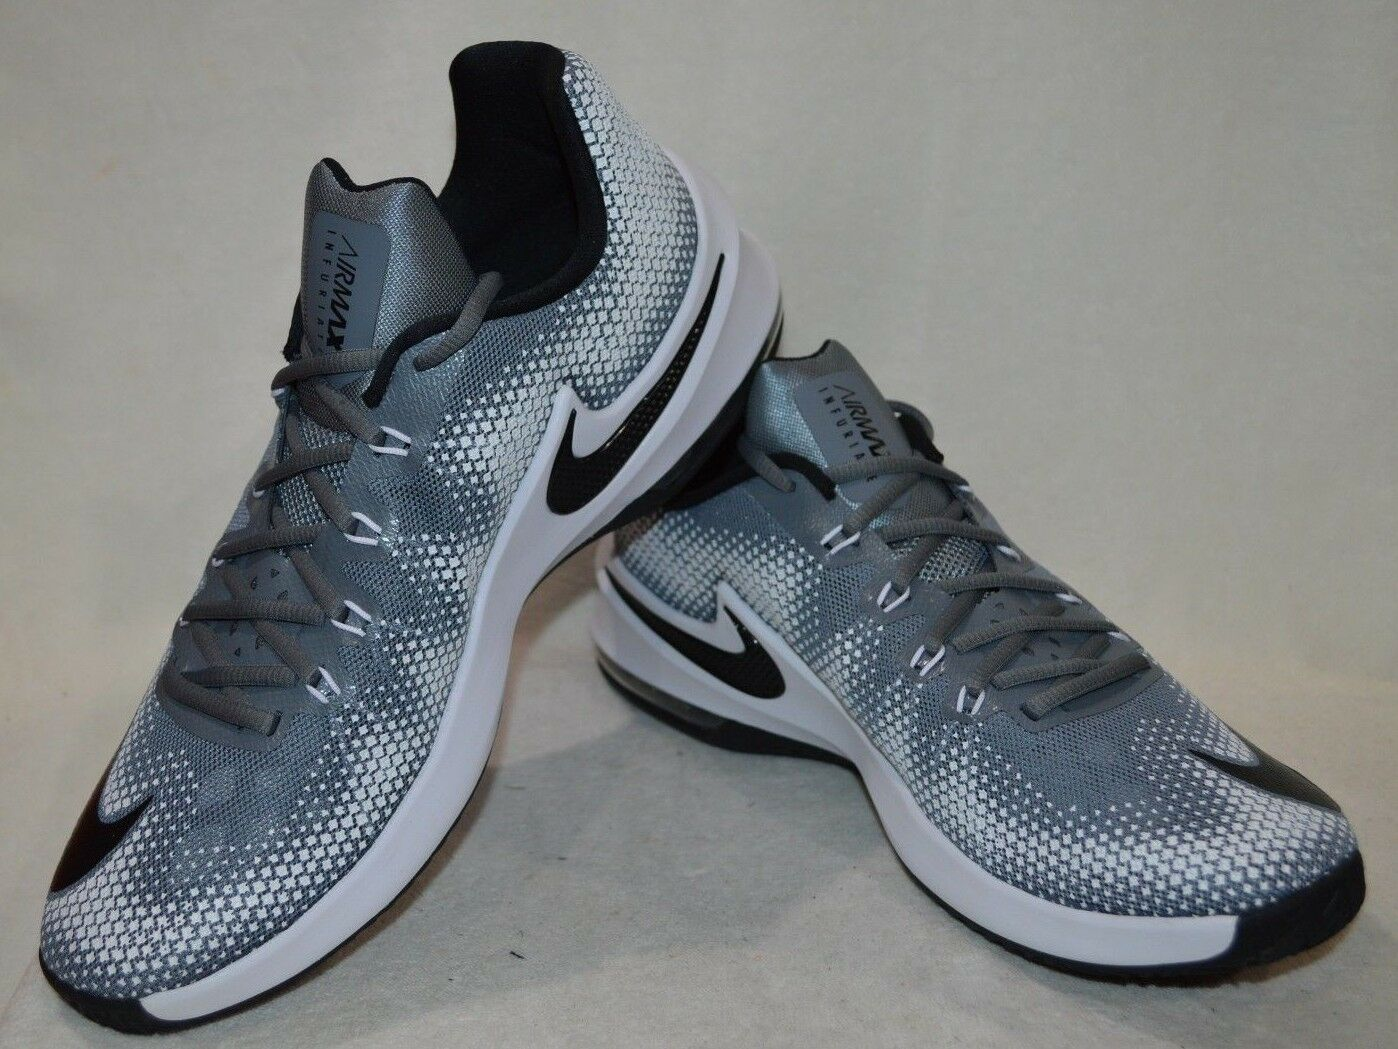 Nike Air Max Infuriate Low Grey/Black/White Men's Basketball Shoes-Asst Size NWB